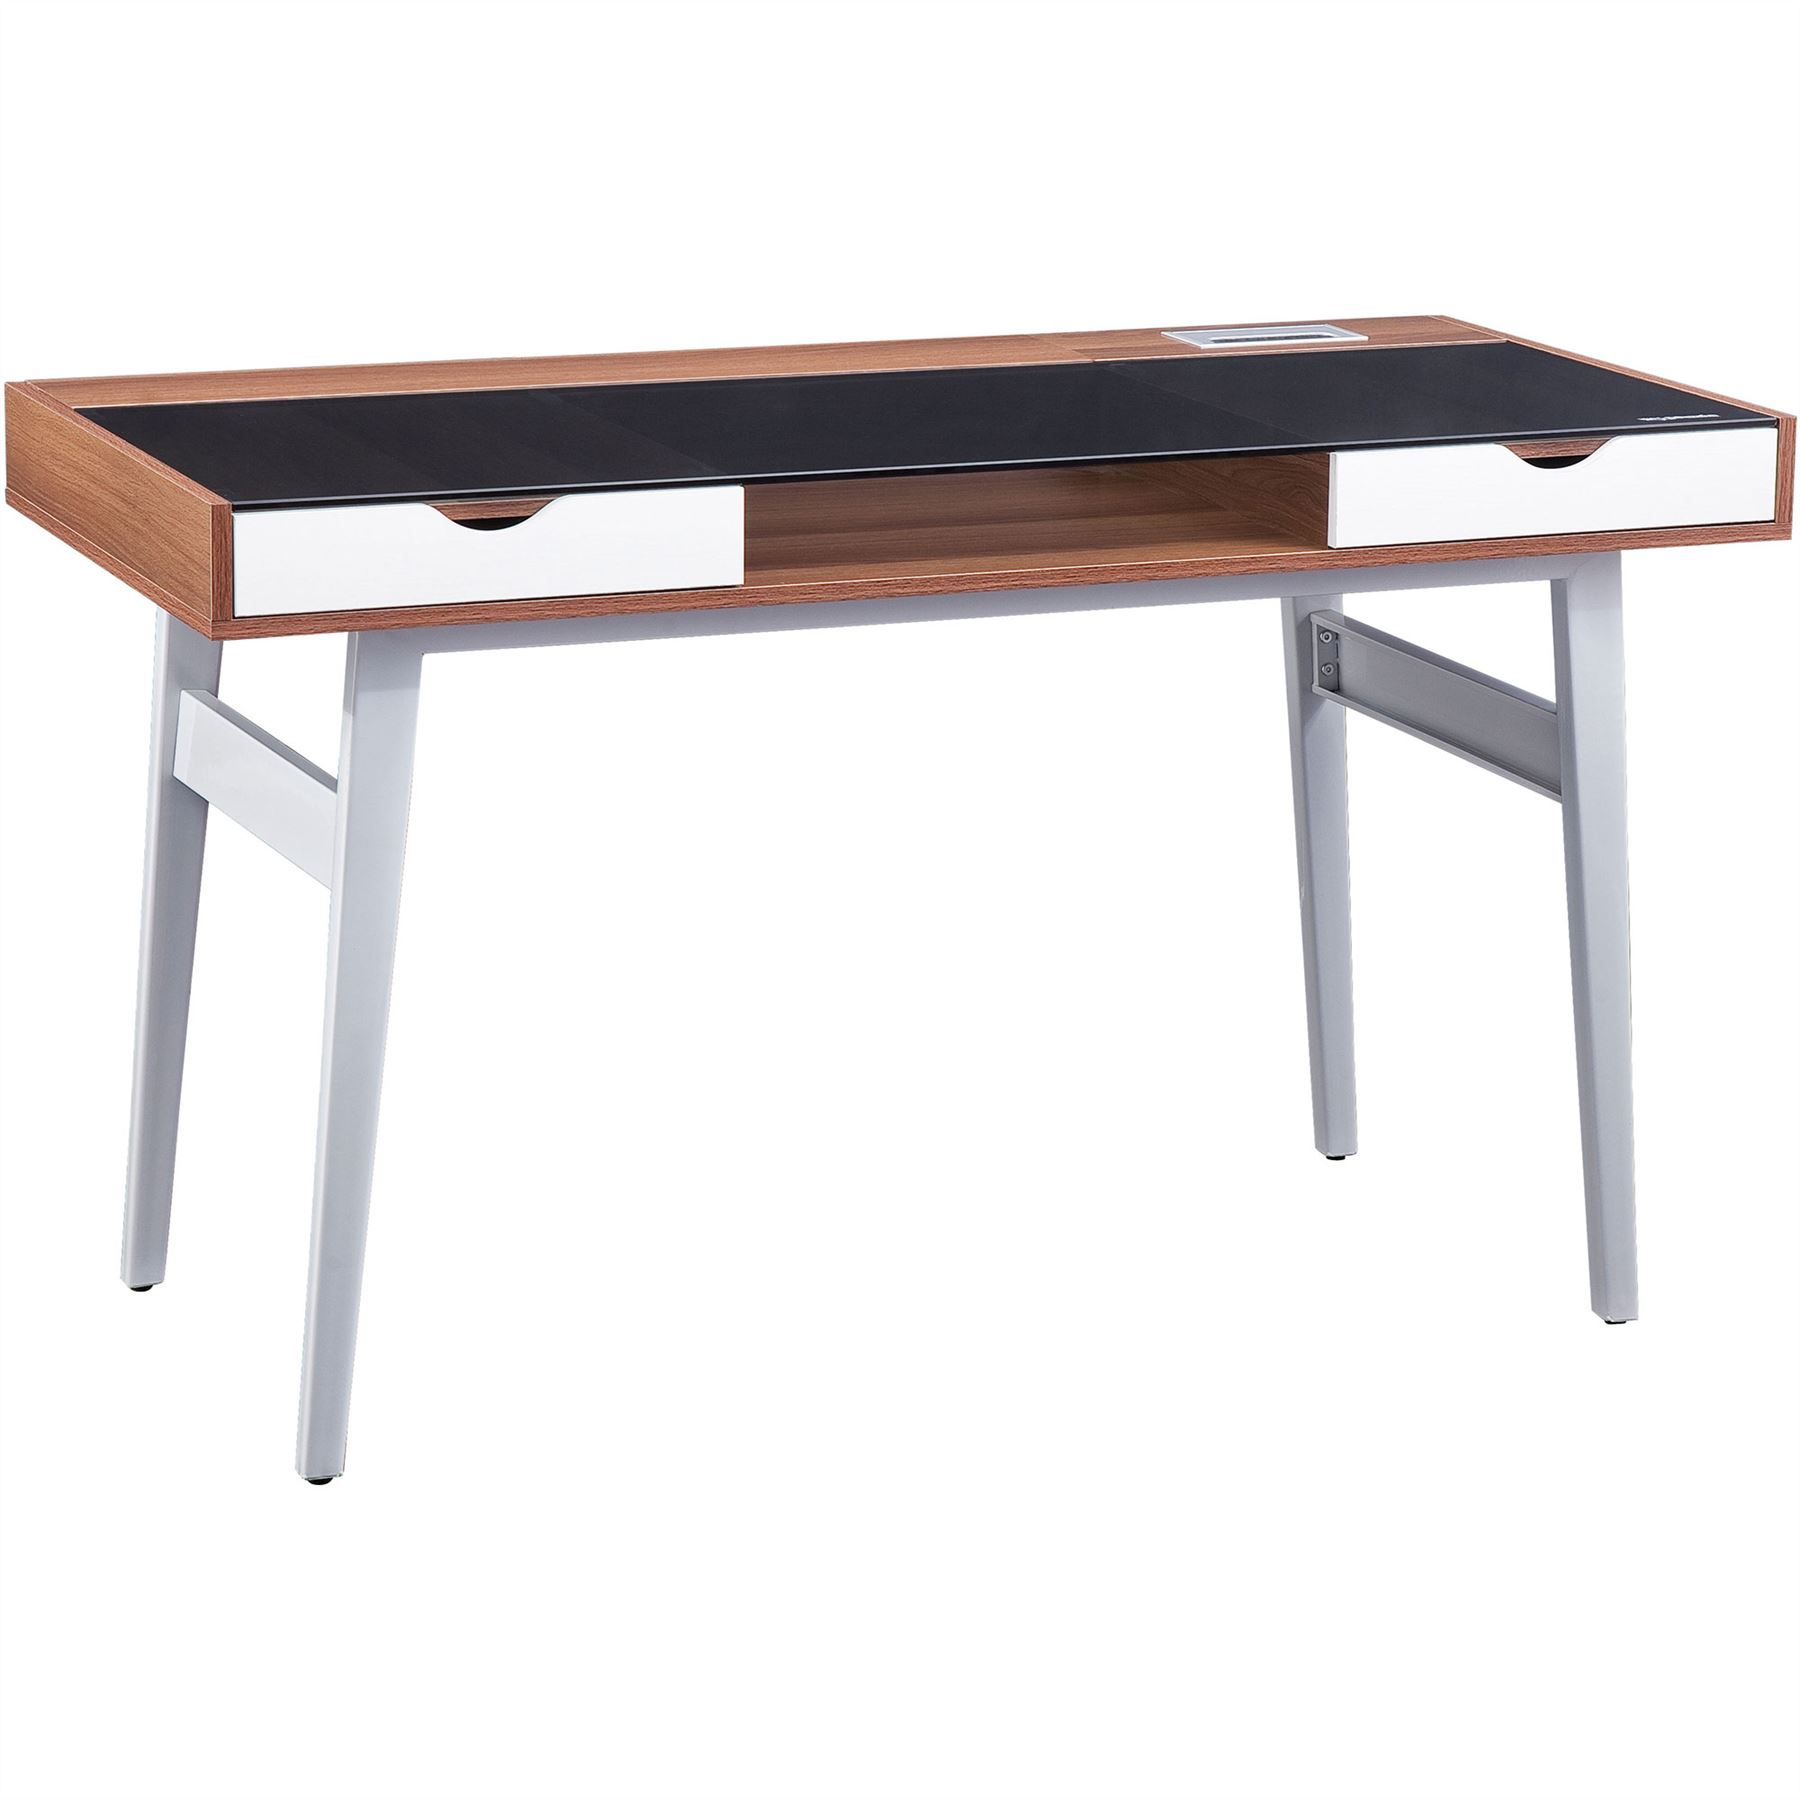 retro glass desk with drawers furniture for home office. Black Bedroom Furniture Sets. Home Design Ideas